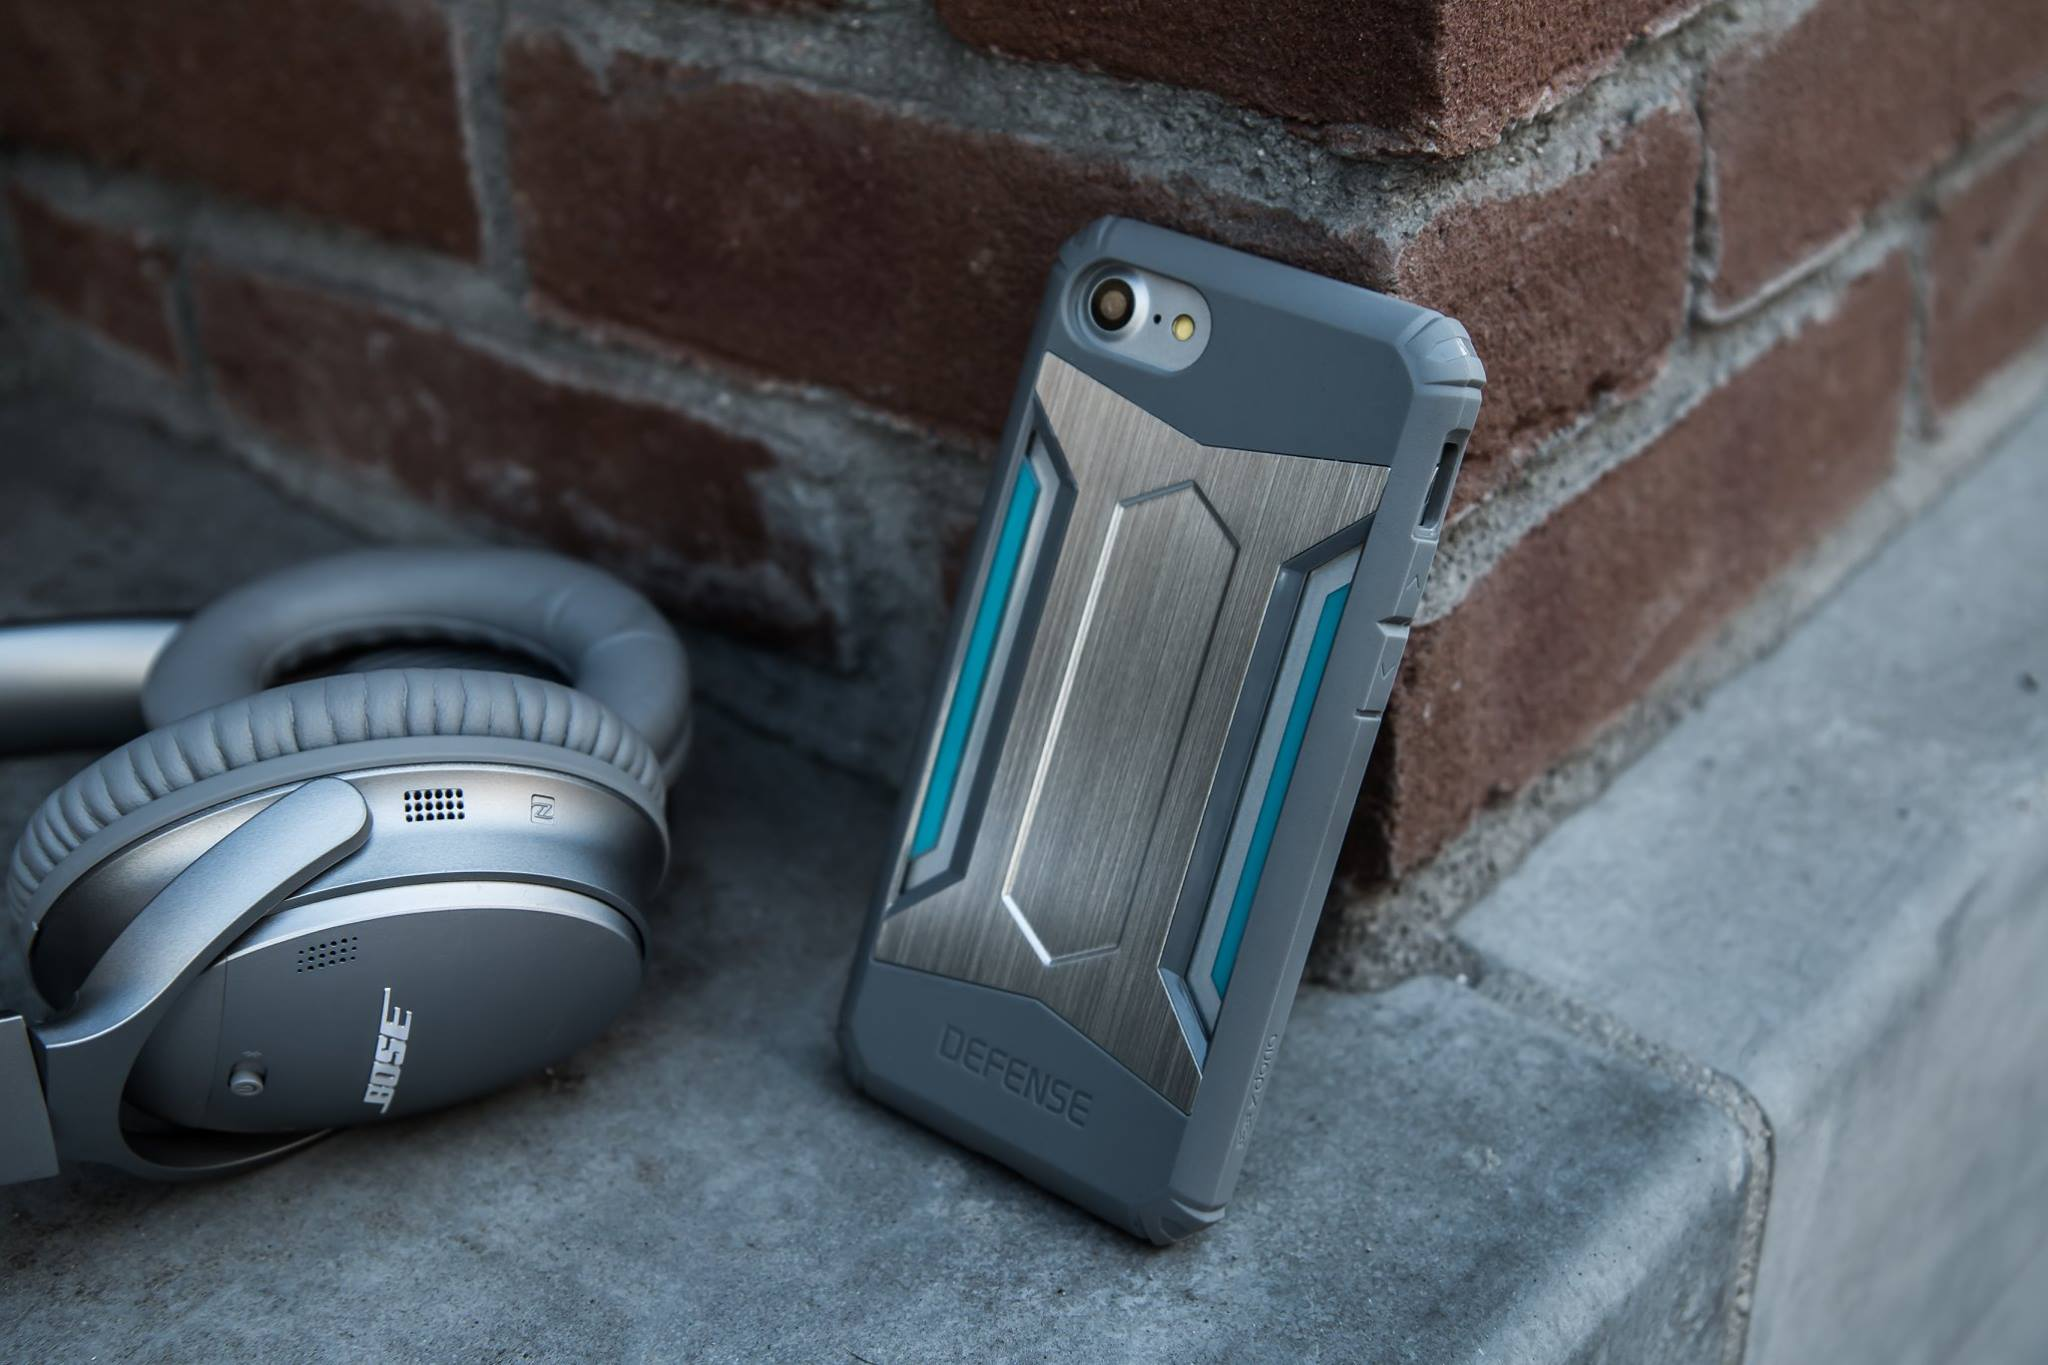 408d9fbddf3b99 Top 10: Rugged iPhone 8 Plus cases built to withstand anything ...